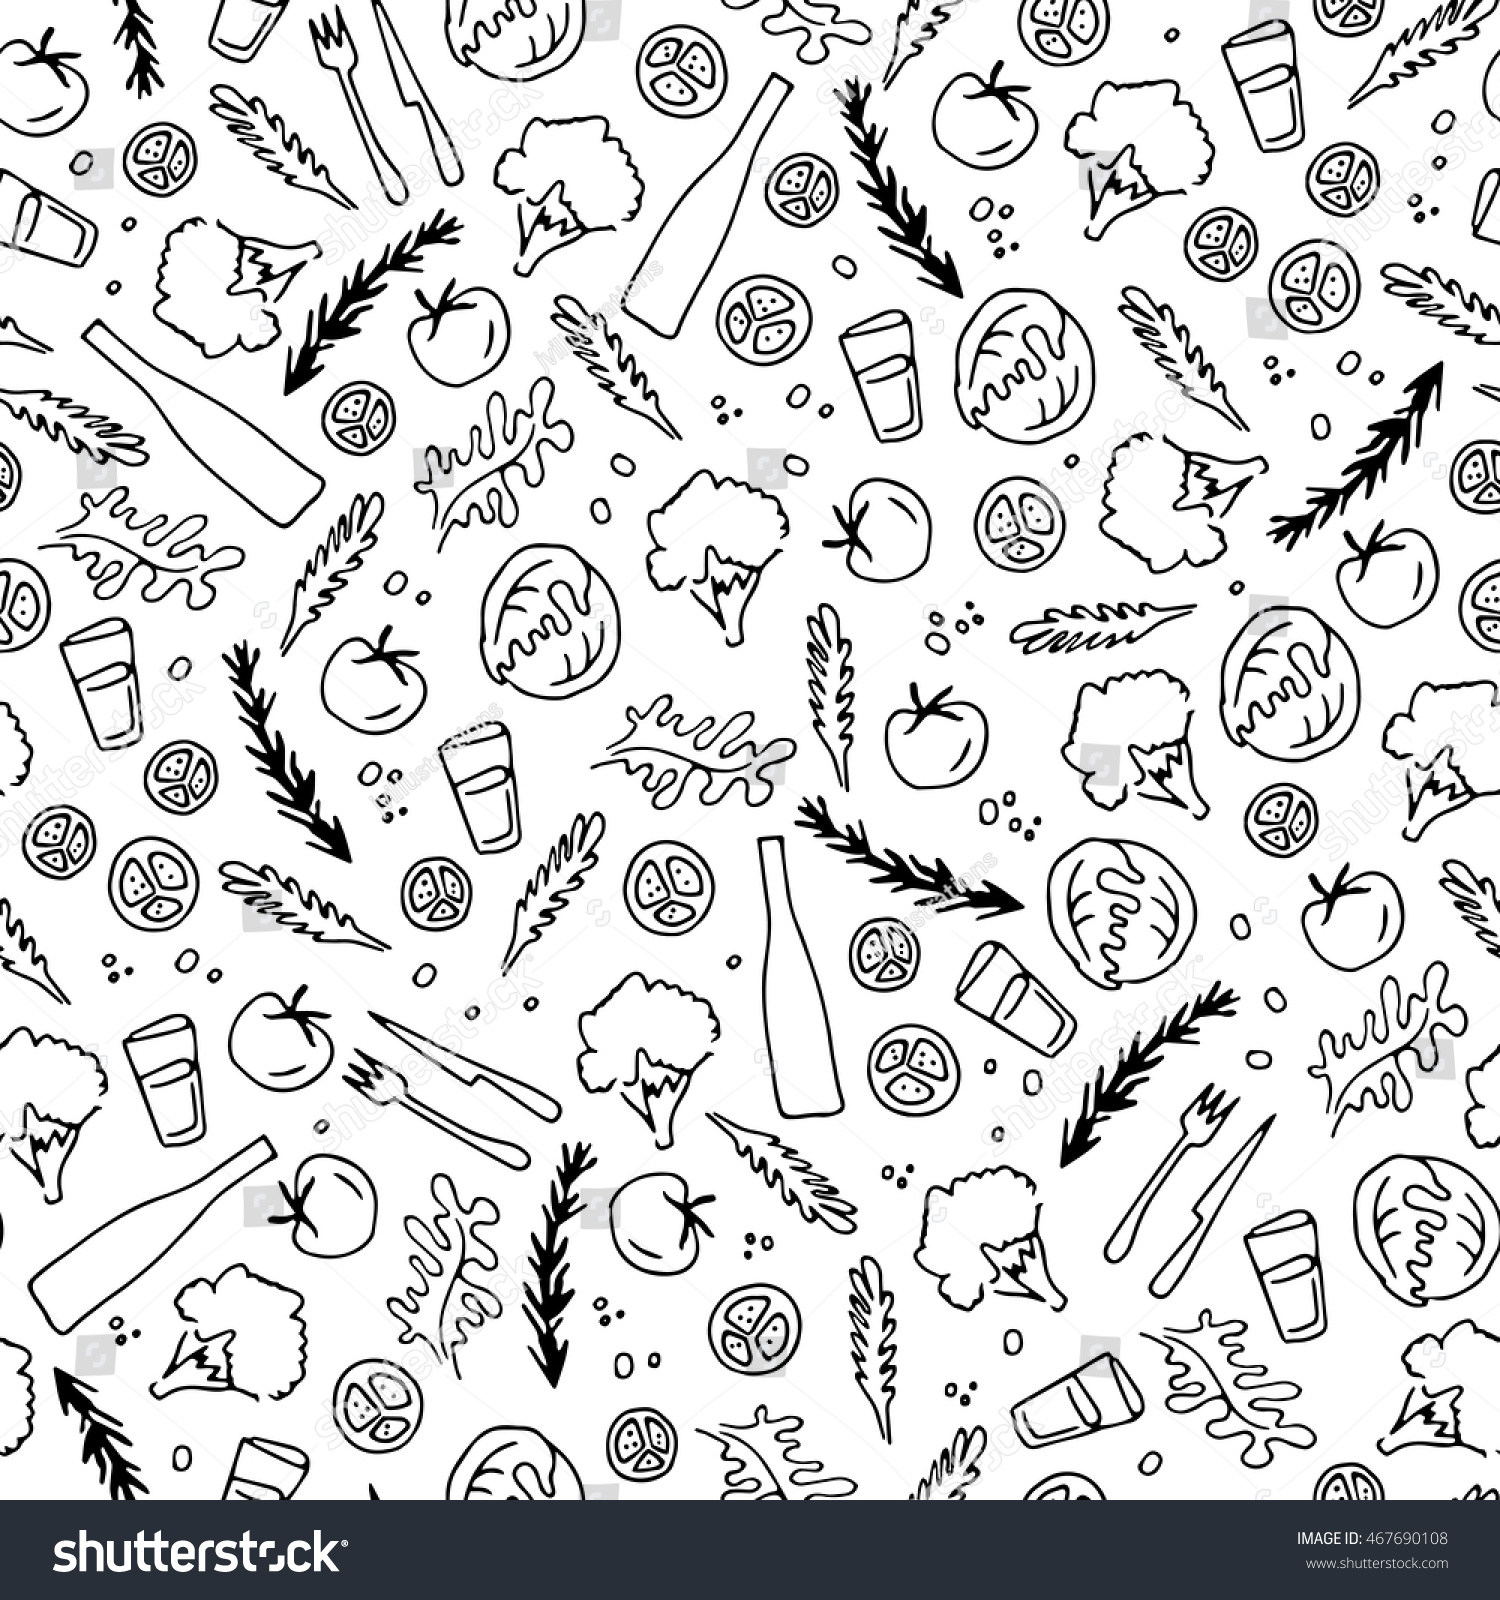 Black And White Cartoon Wallpapers (43 Wallpapers)